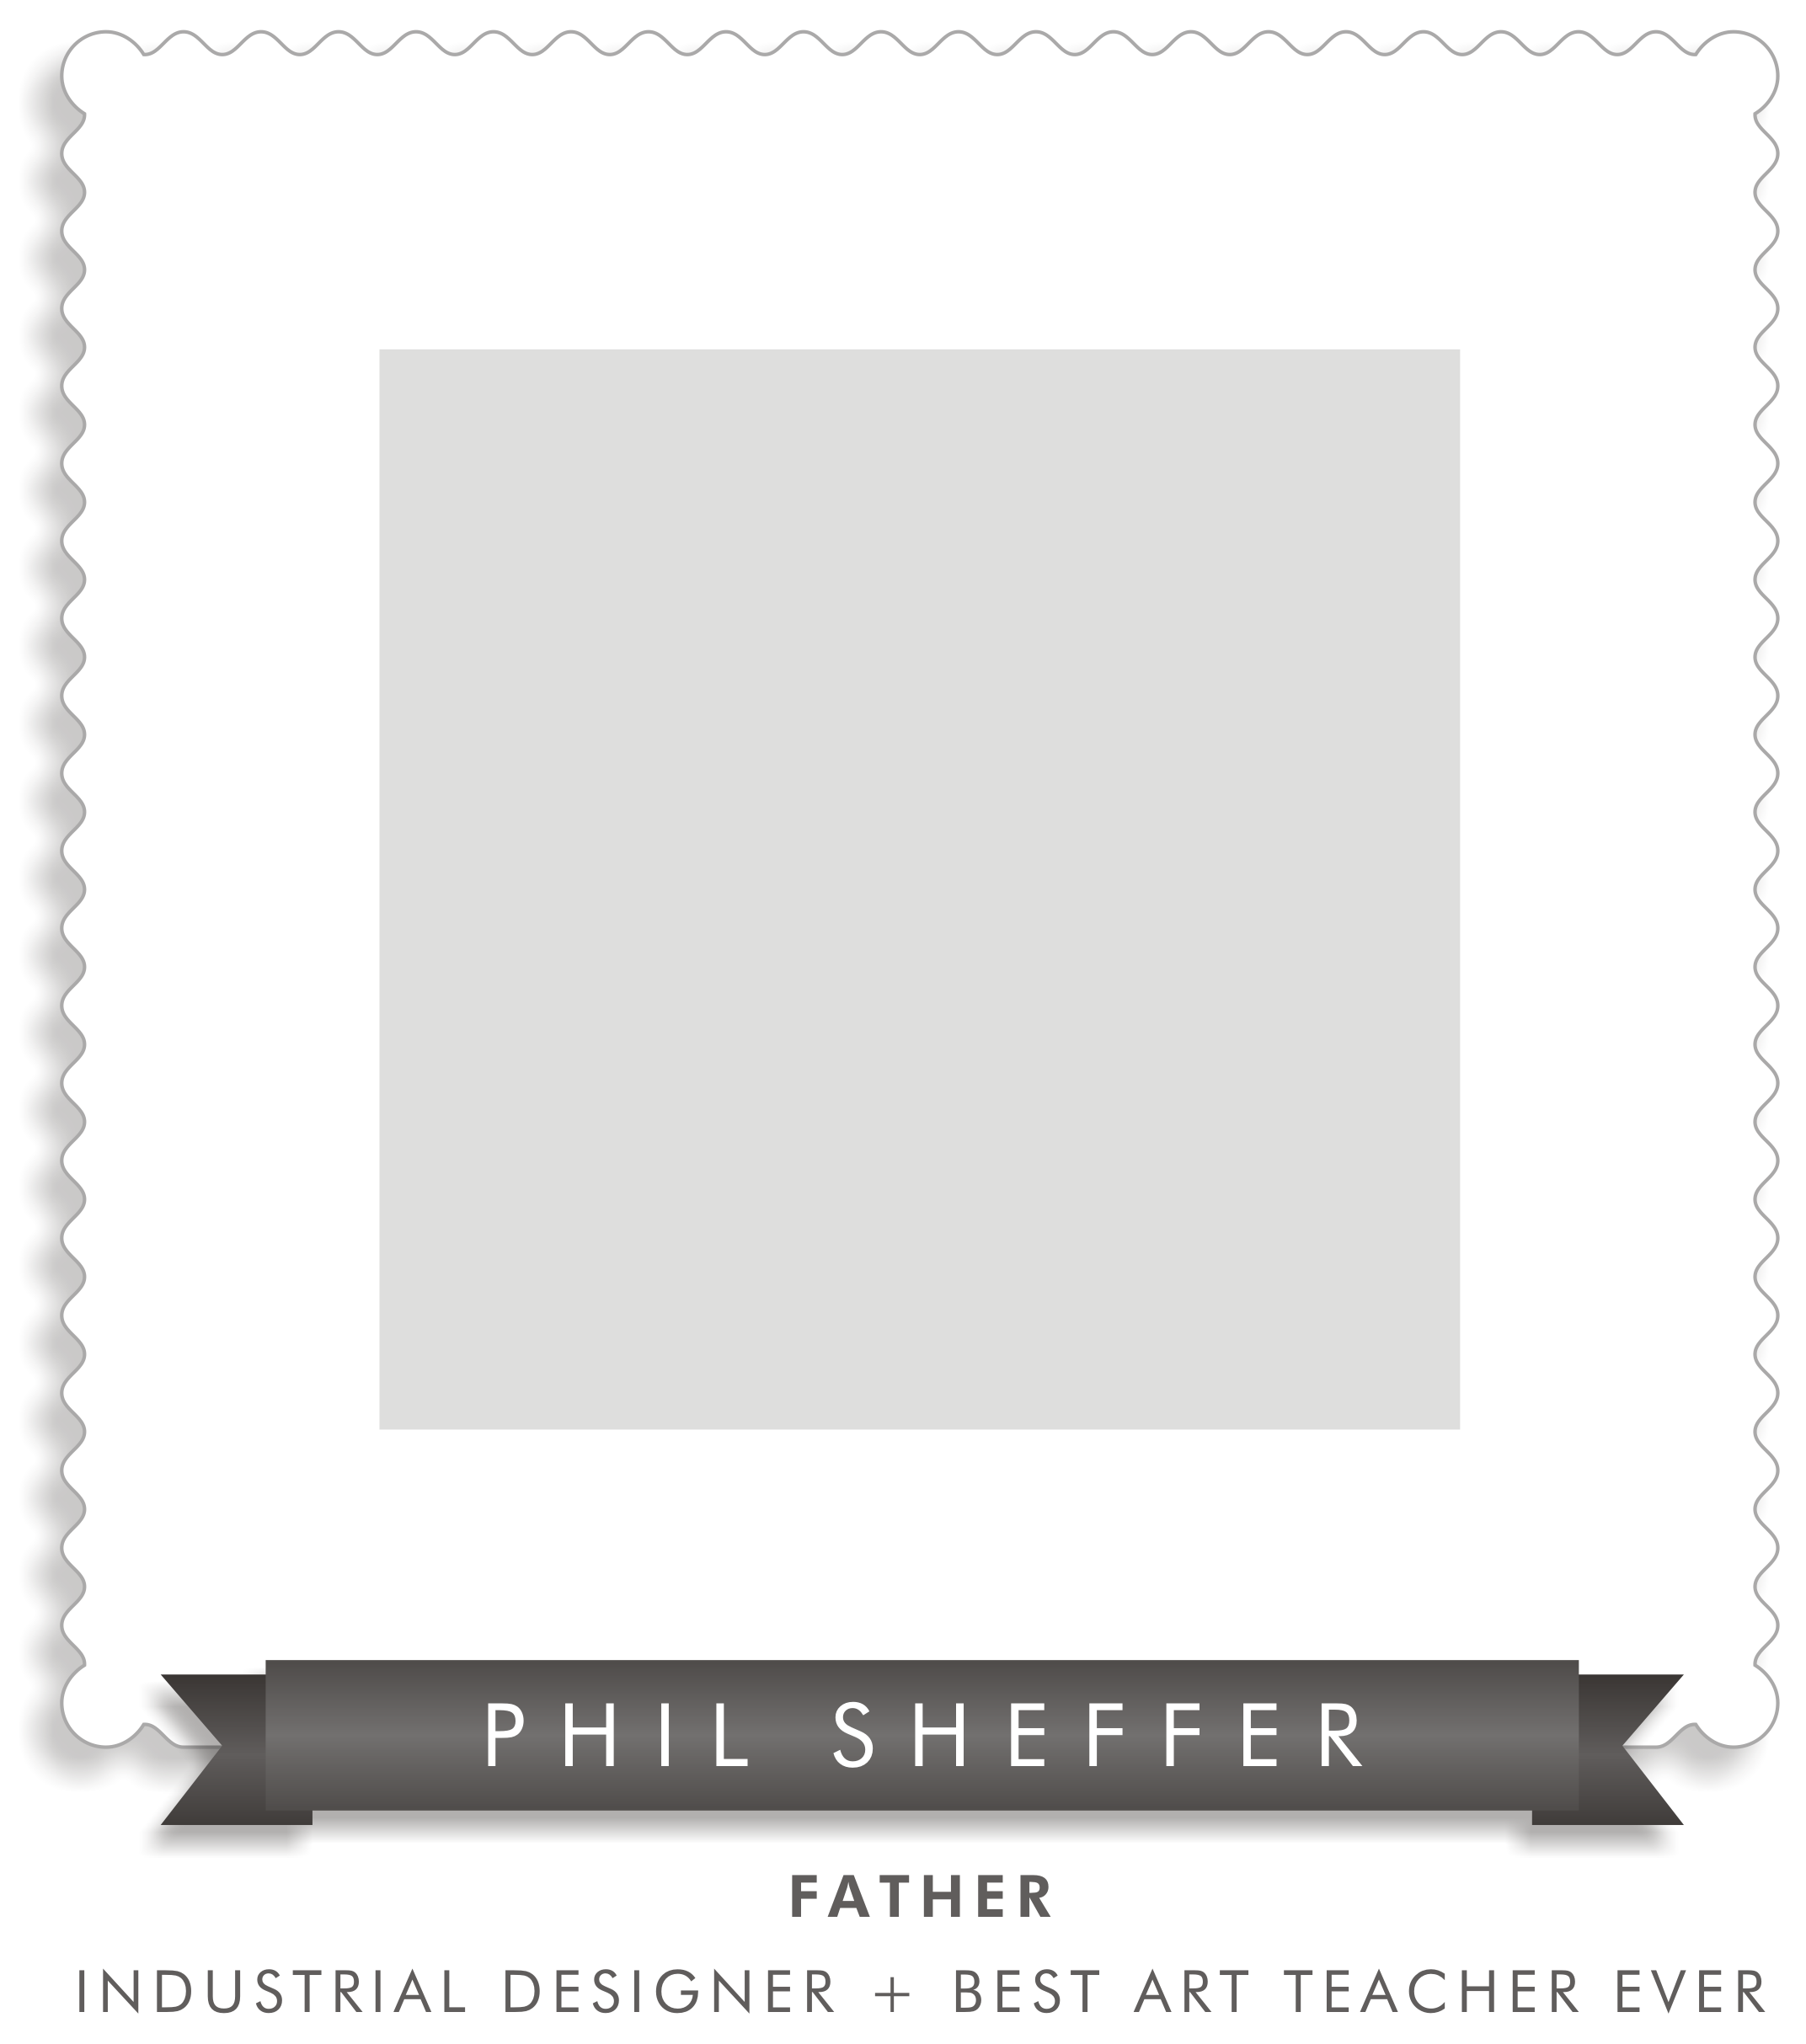 PHIL SHEFFER PHOTO prefinal.png